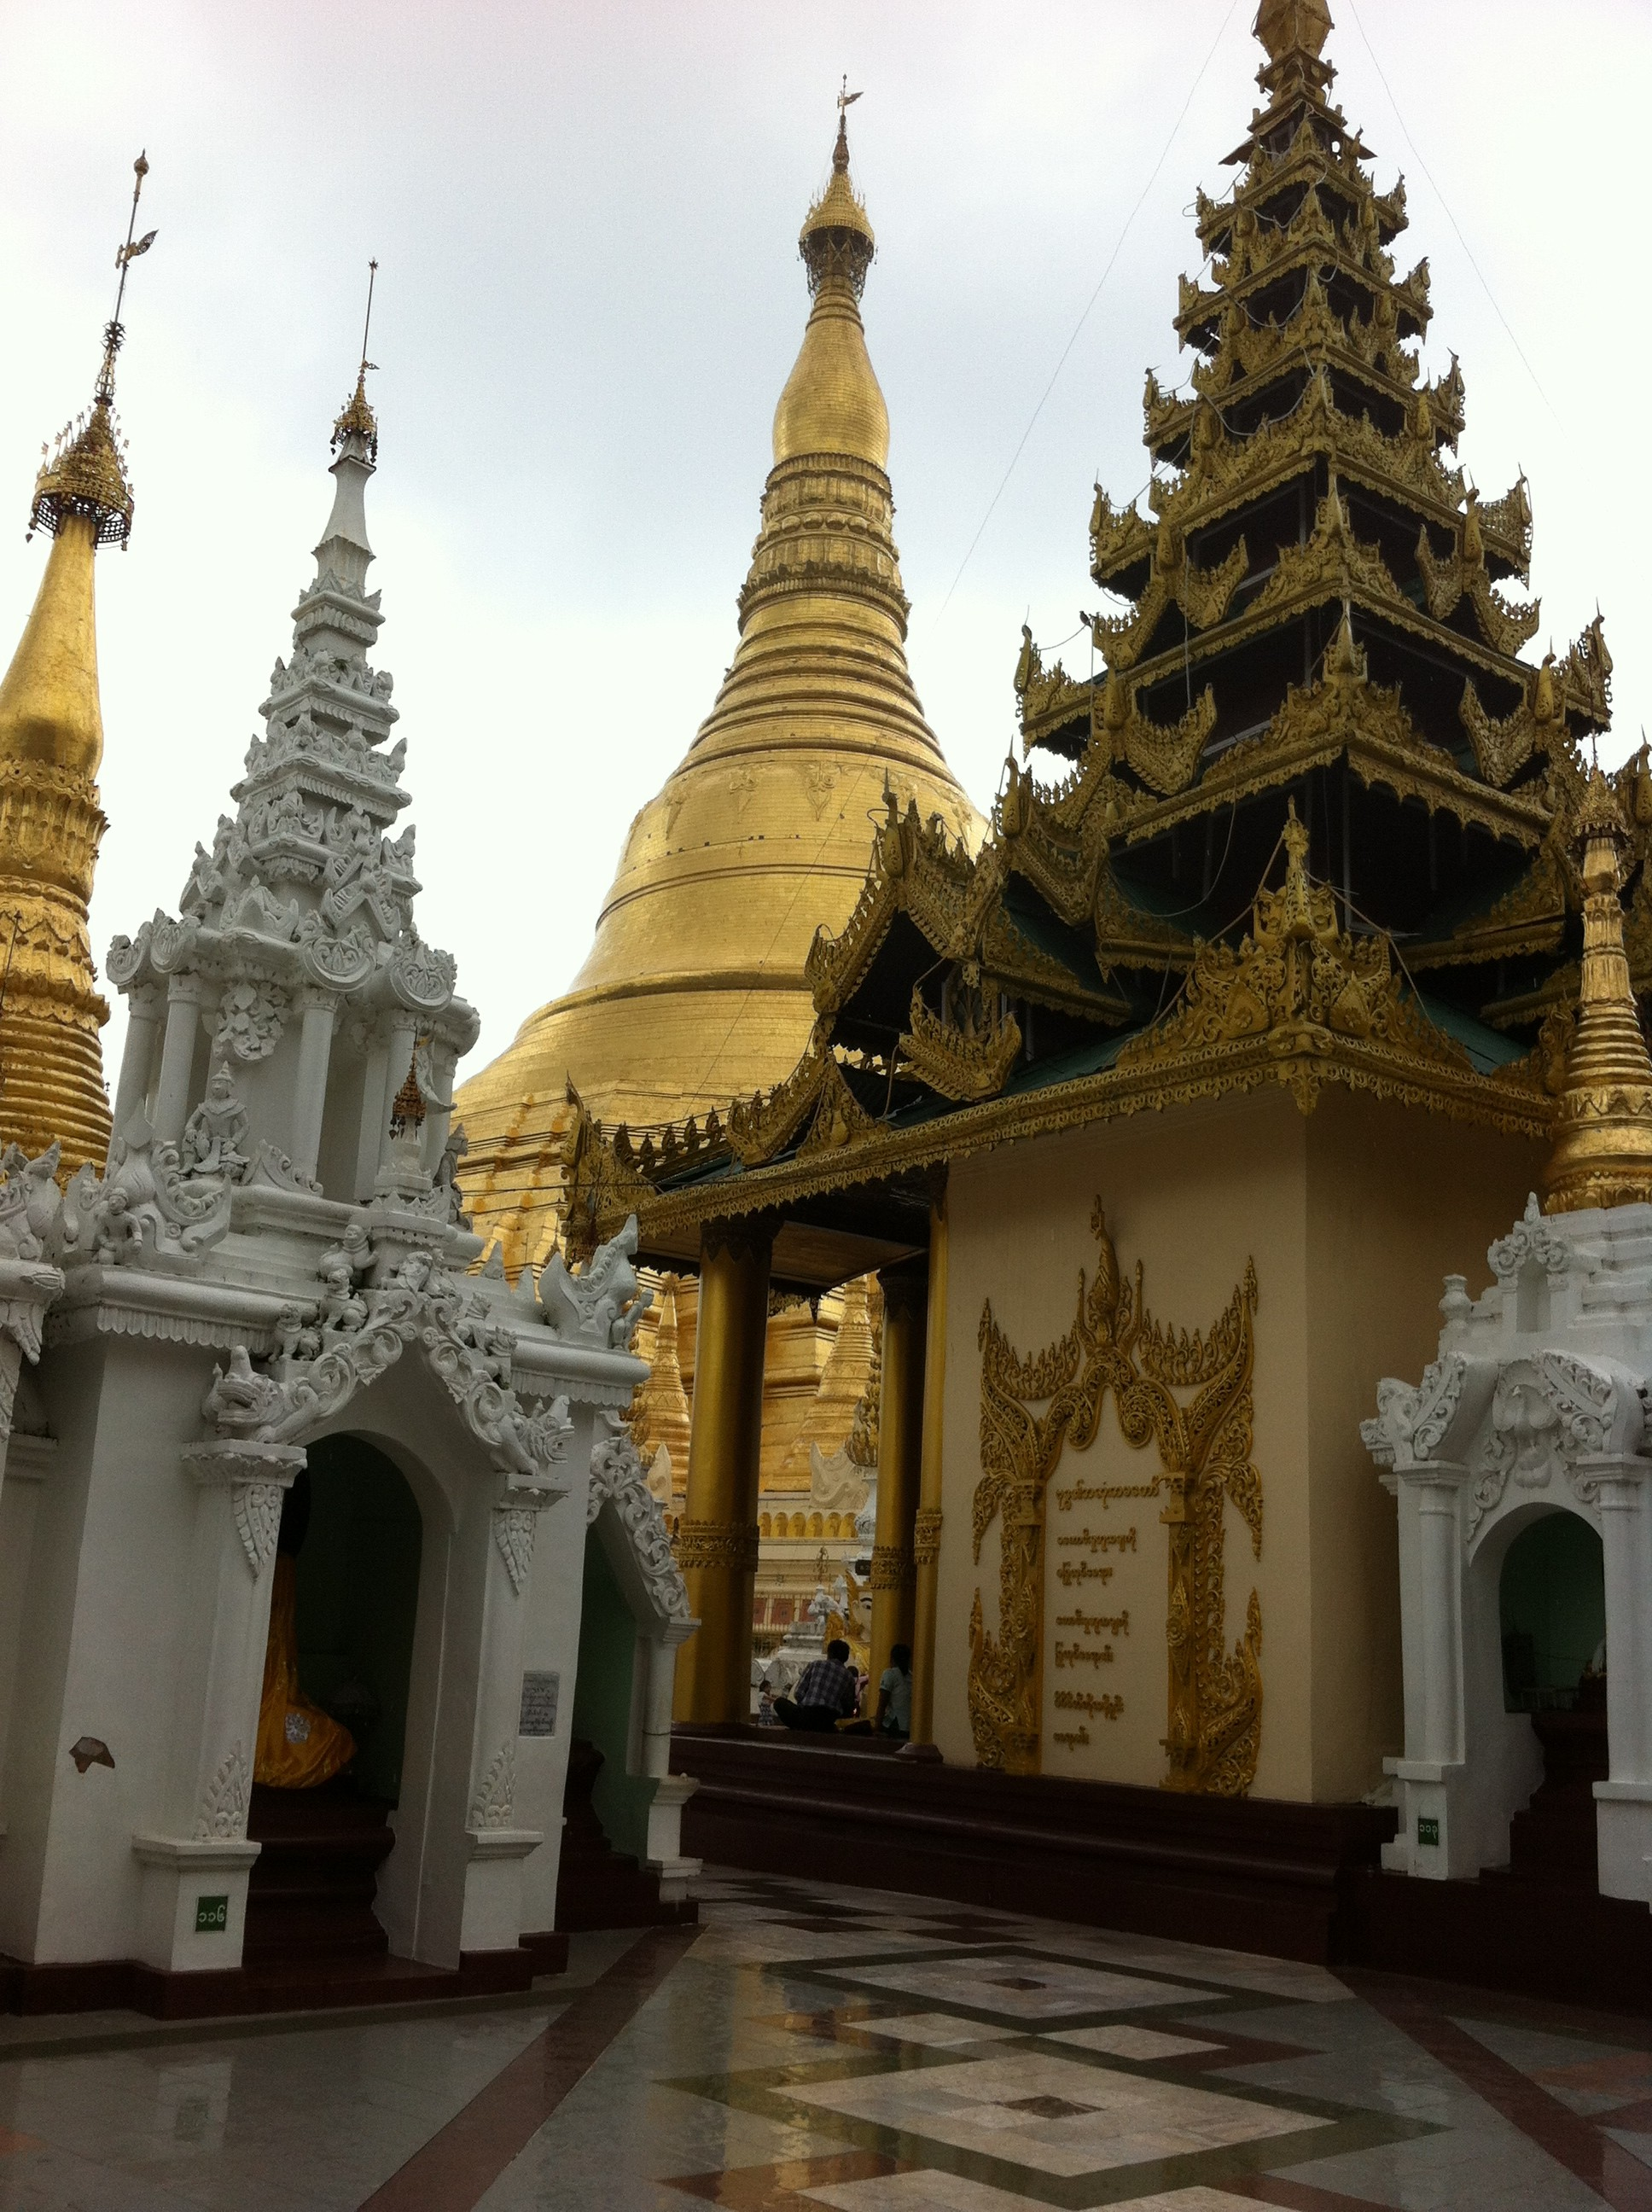 Entrance to the terrace of the Shwedagon Pagoda from the south east corner (photo Catherine Clover 2012)